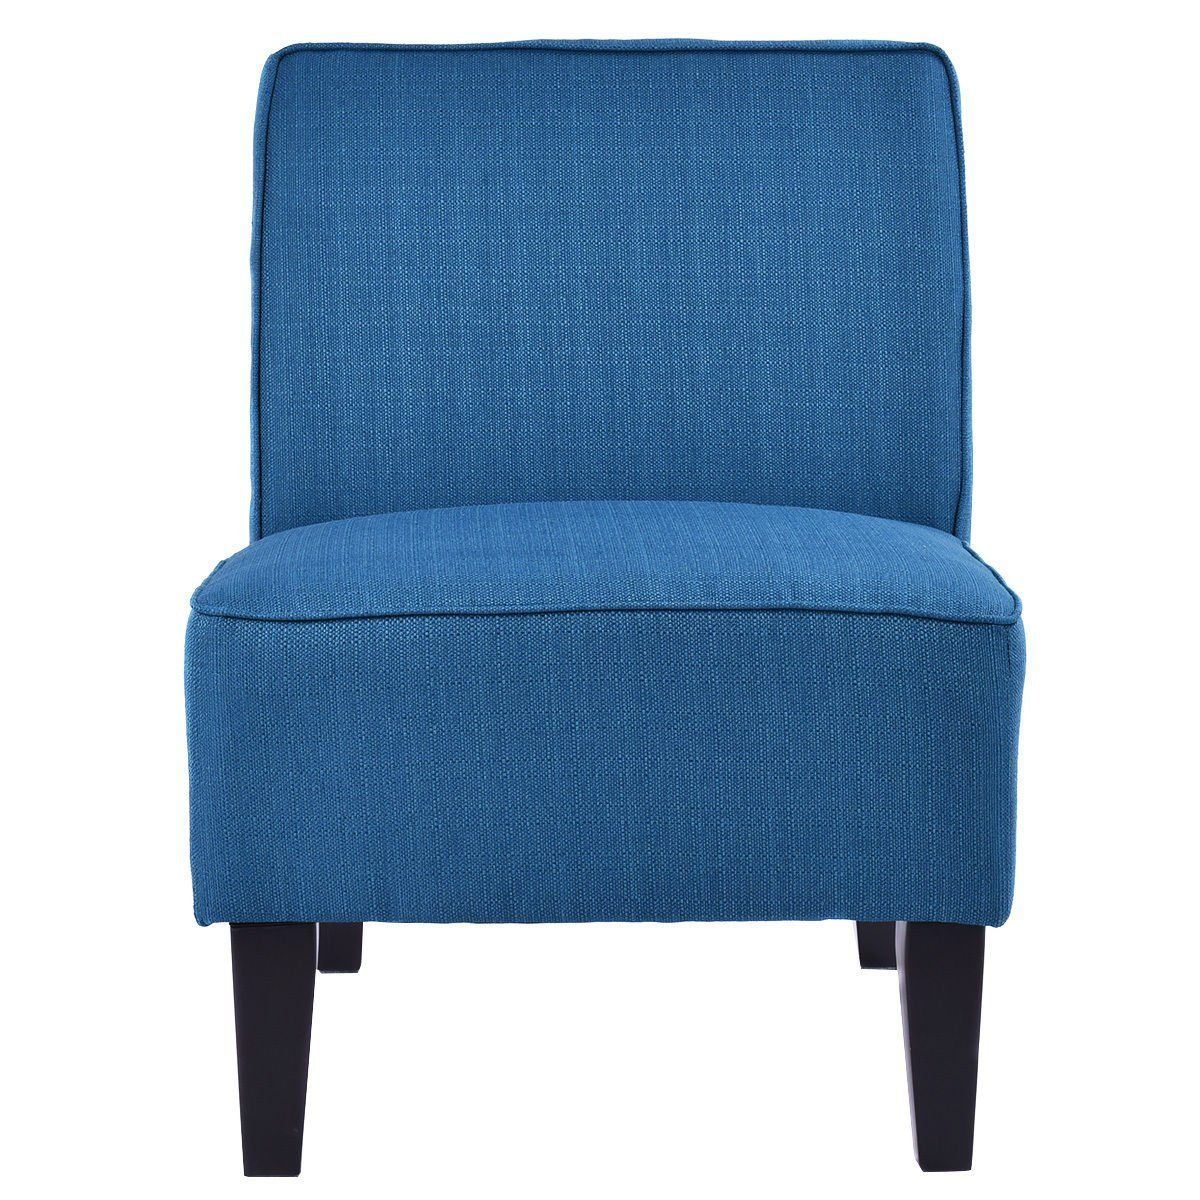 Giantex Deco Solids Accent Chair Armless